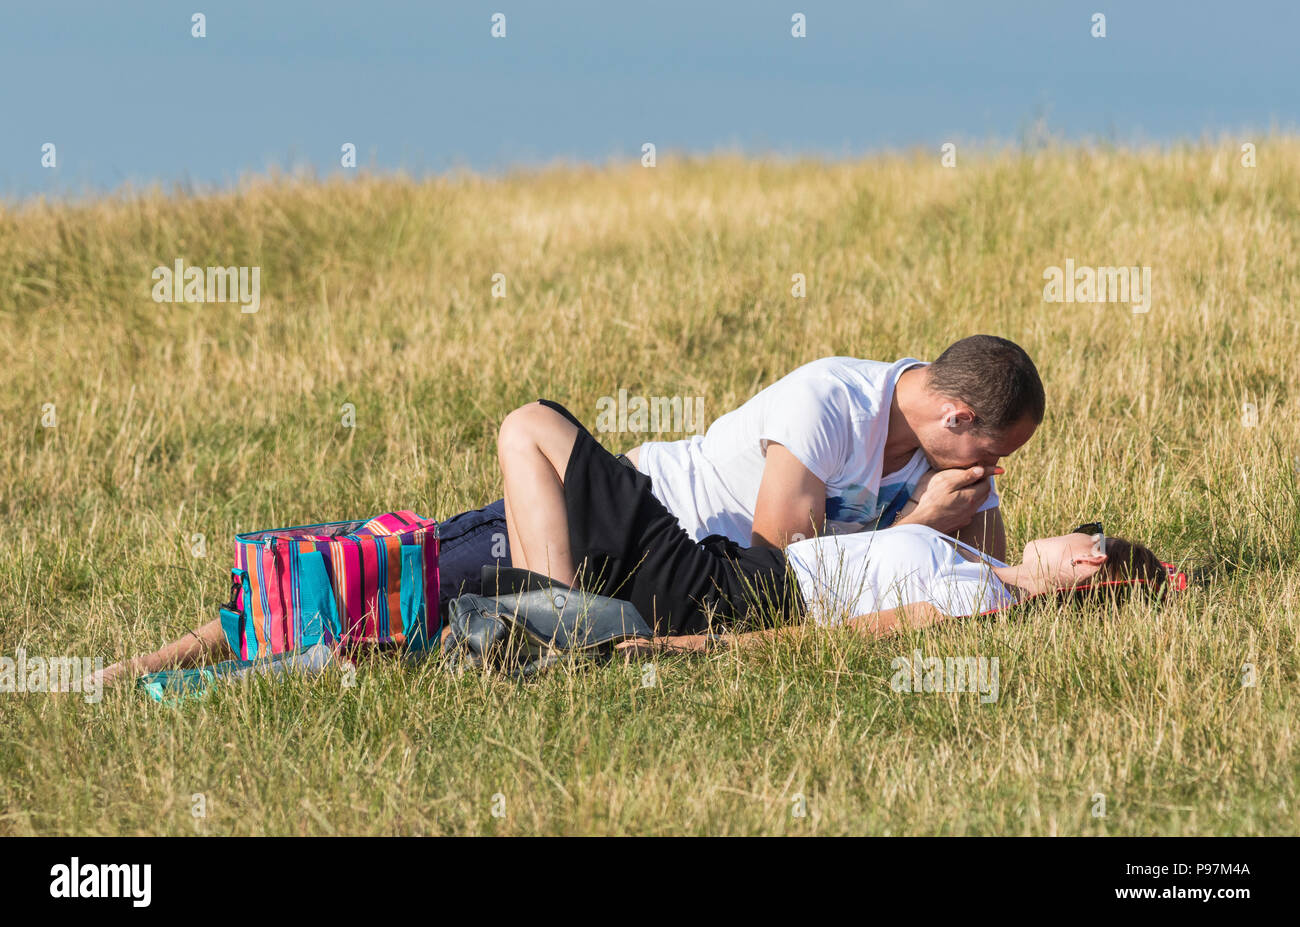 Young man and woman laying together in a field on a warm summer evening sharing an intimate moment. Young couple in UK. NOTE:They may not be a couple. - Stock Image